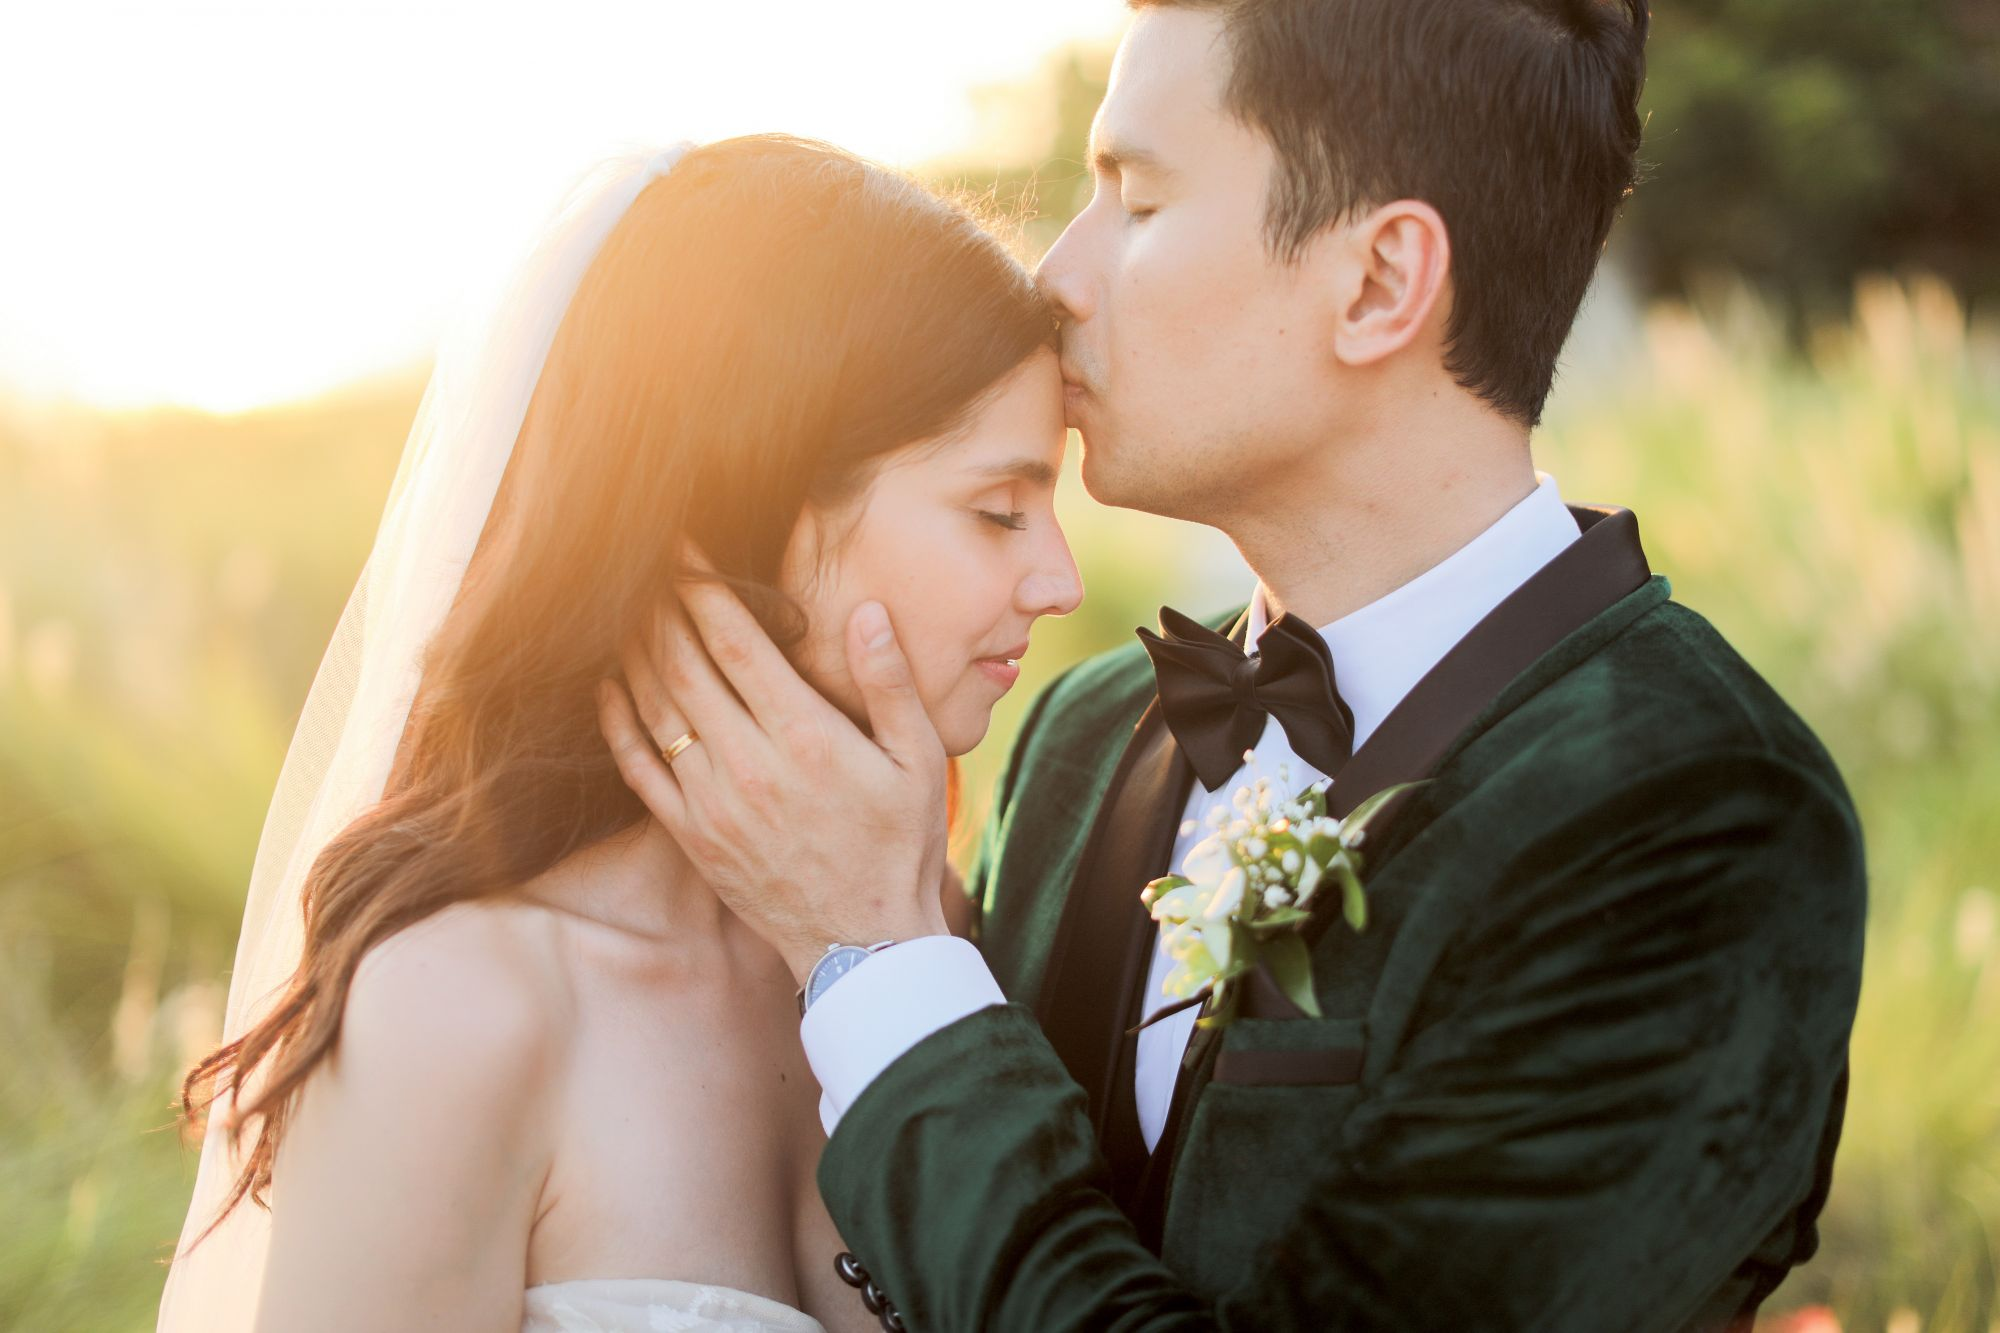 When Two Paths Cross: Christian Bautista and Kat Ramnani's Nuptials in Bali